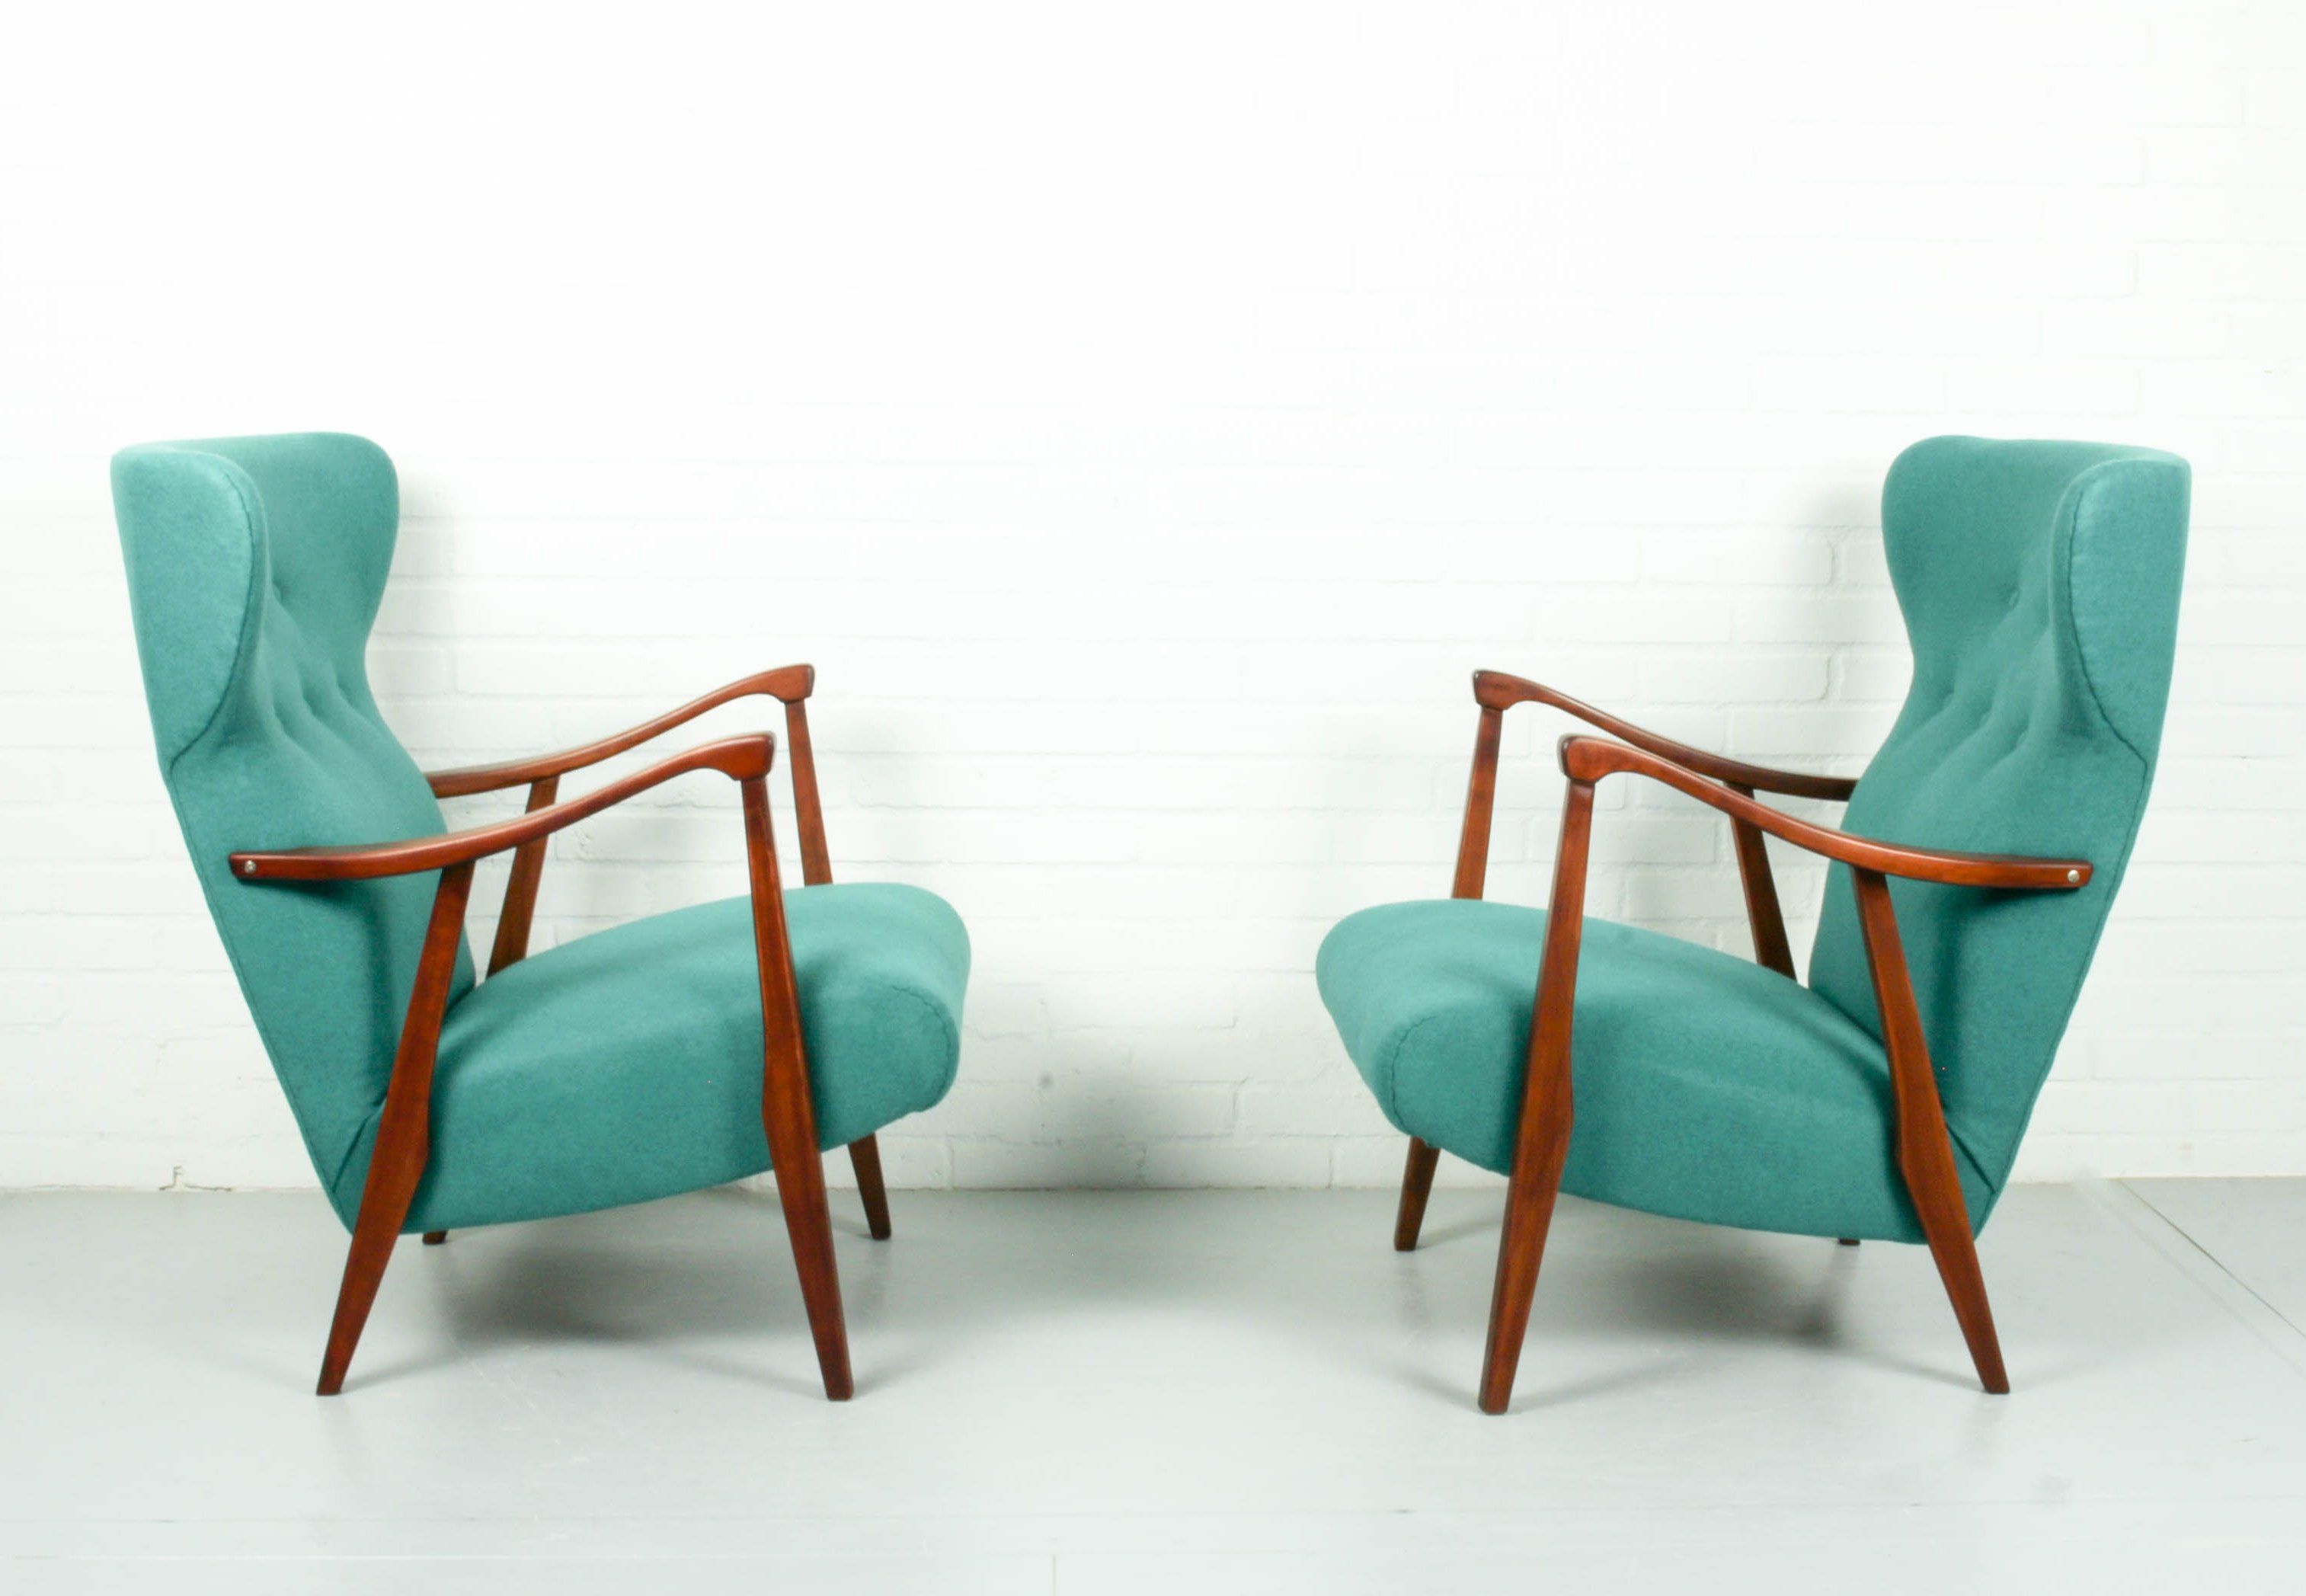 Set Of 2 Vintage Lounge Chairs In Vibrant Green Color,